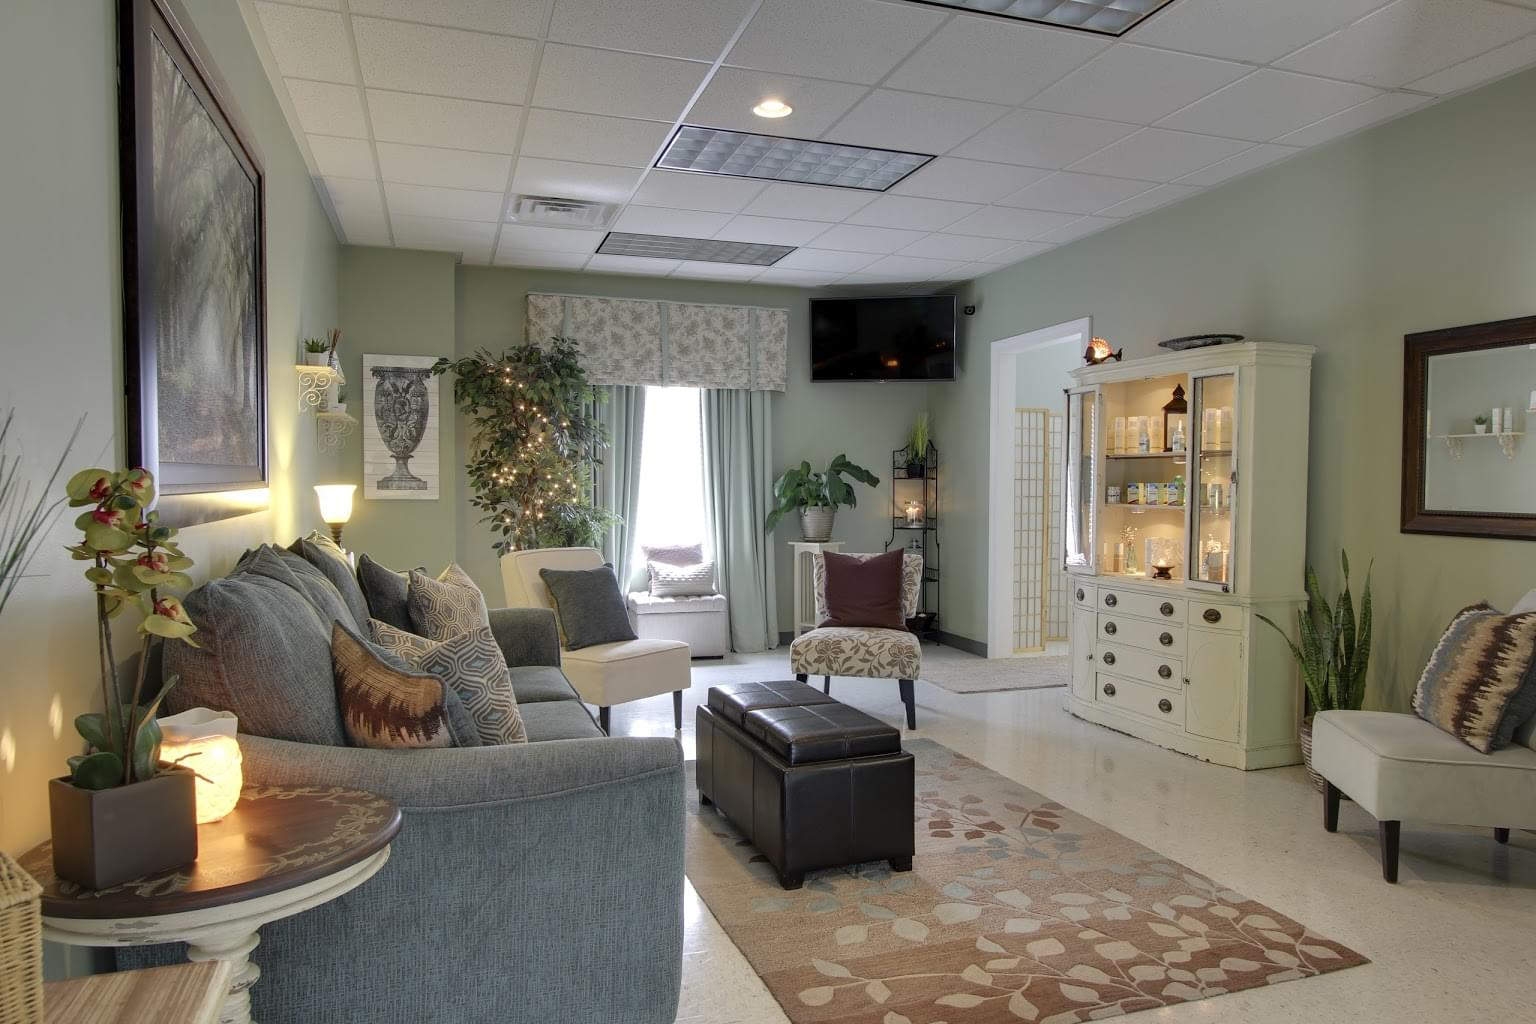 Palmetto Med Spa Ladson, SC Spa waiting room